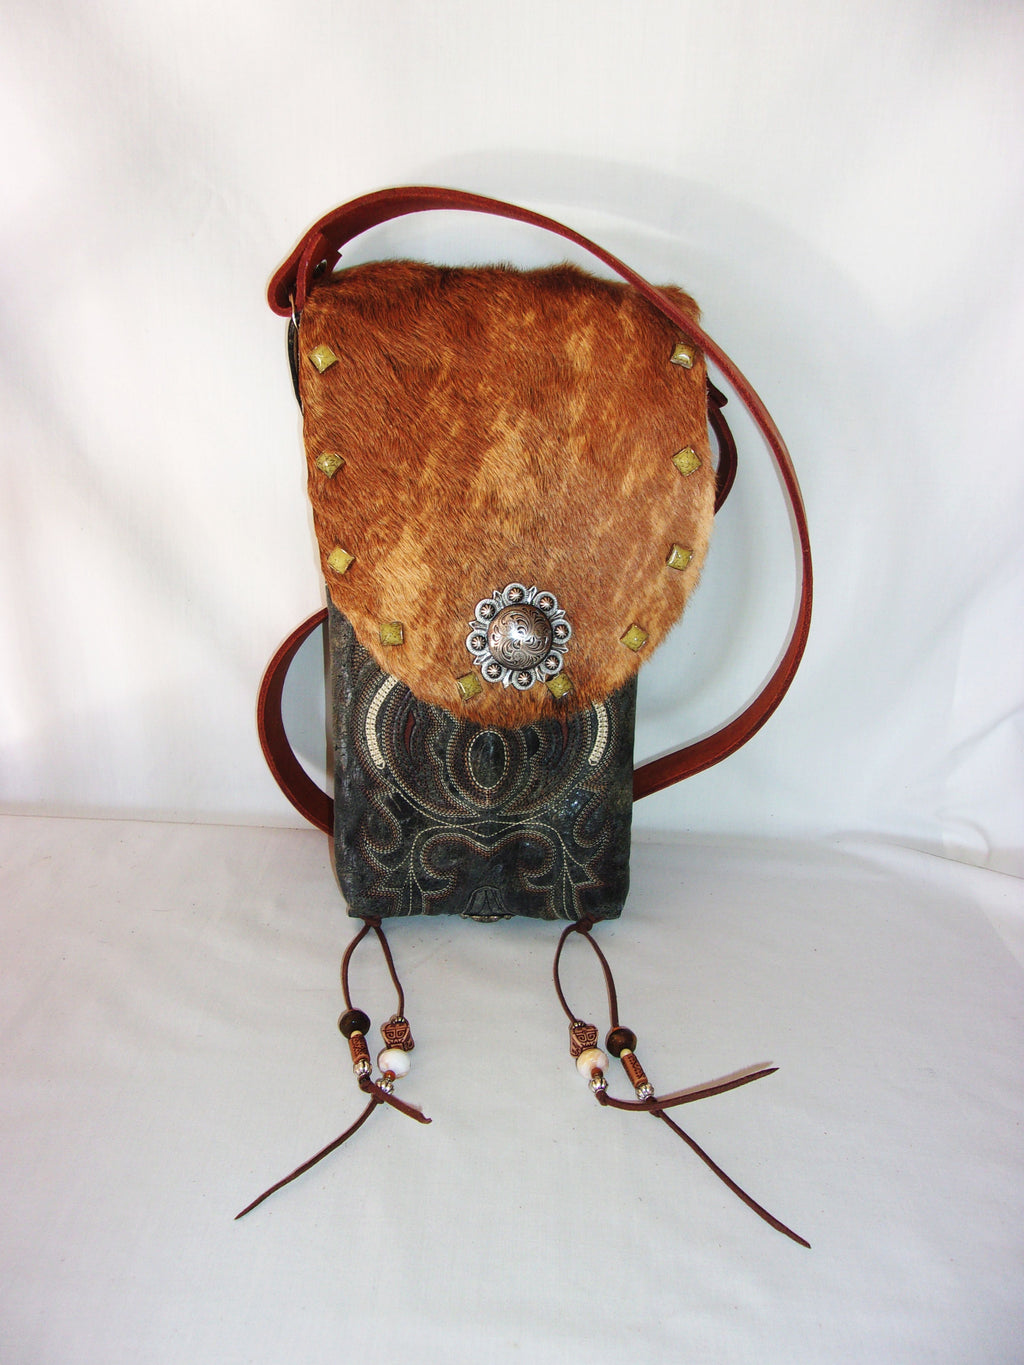 Hair on Hide Bag - Cowboy Boot Purse - Cowhide Purse - Handcrafted Crossbody Purse HH24